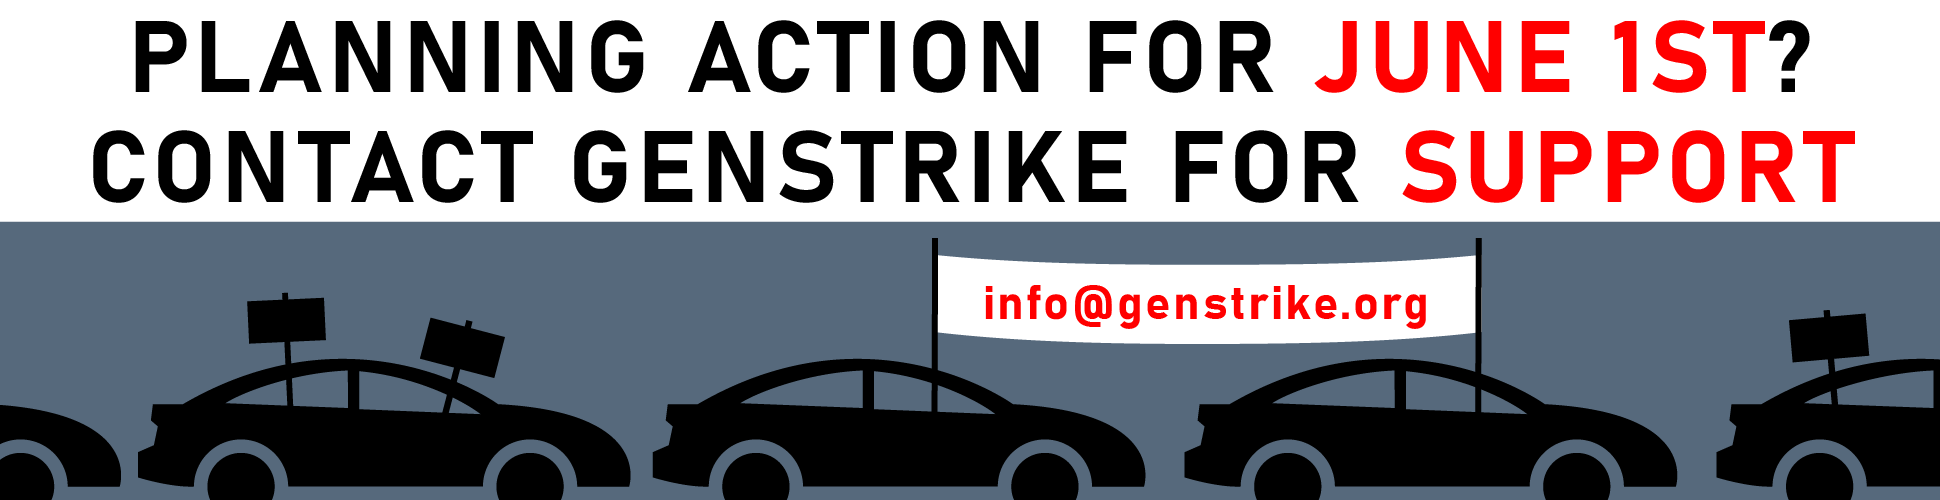 Planning action for June 1st? Contact Genstrike for support